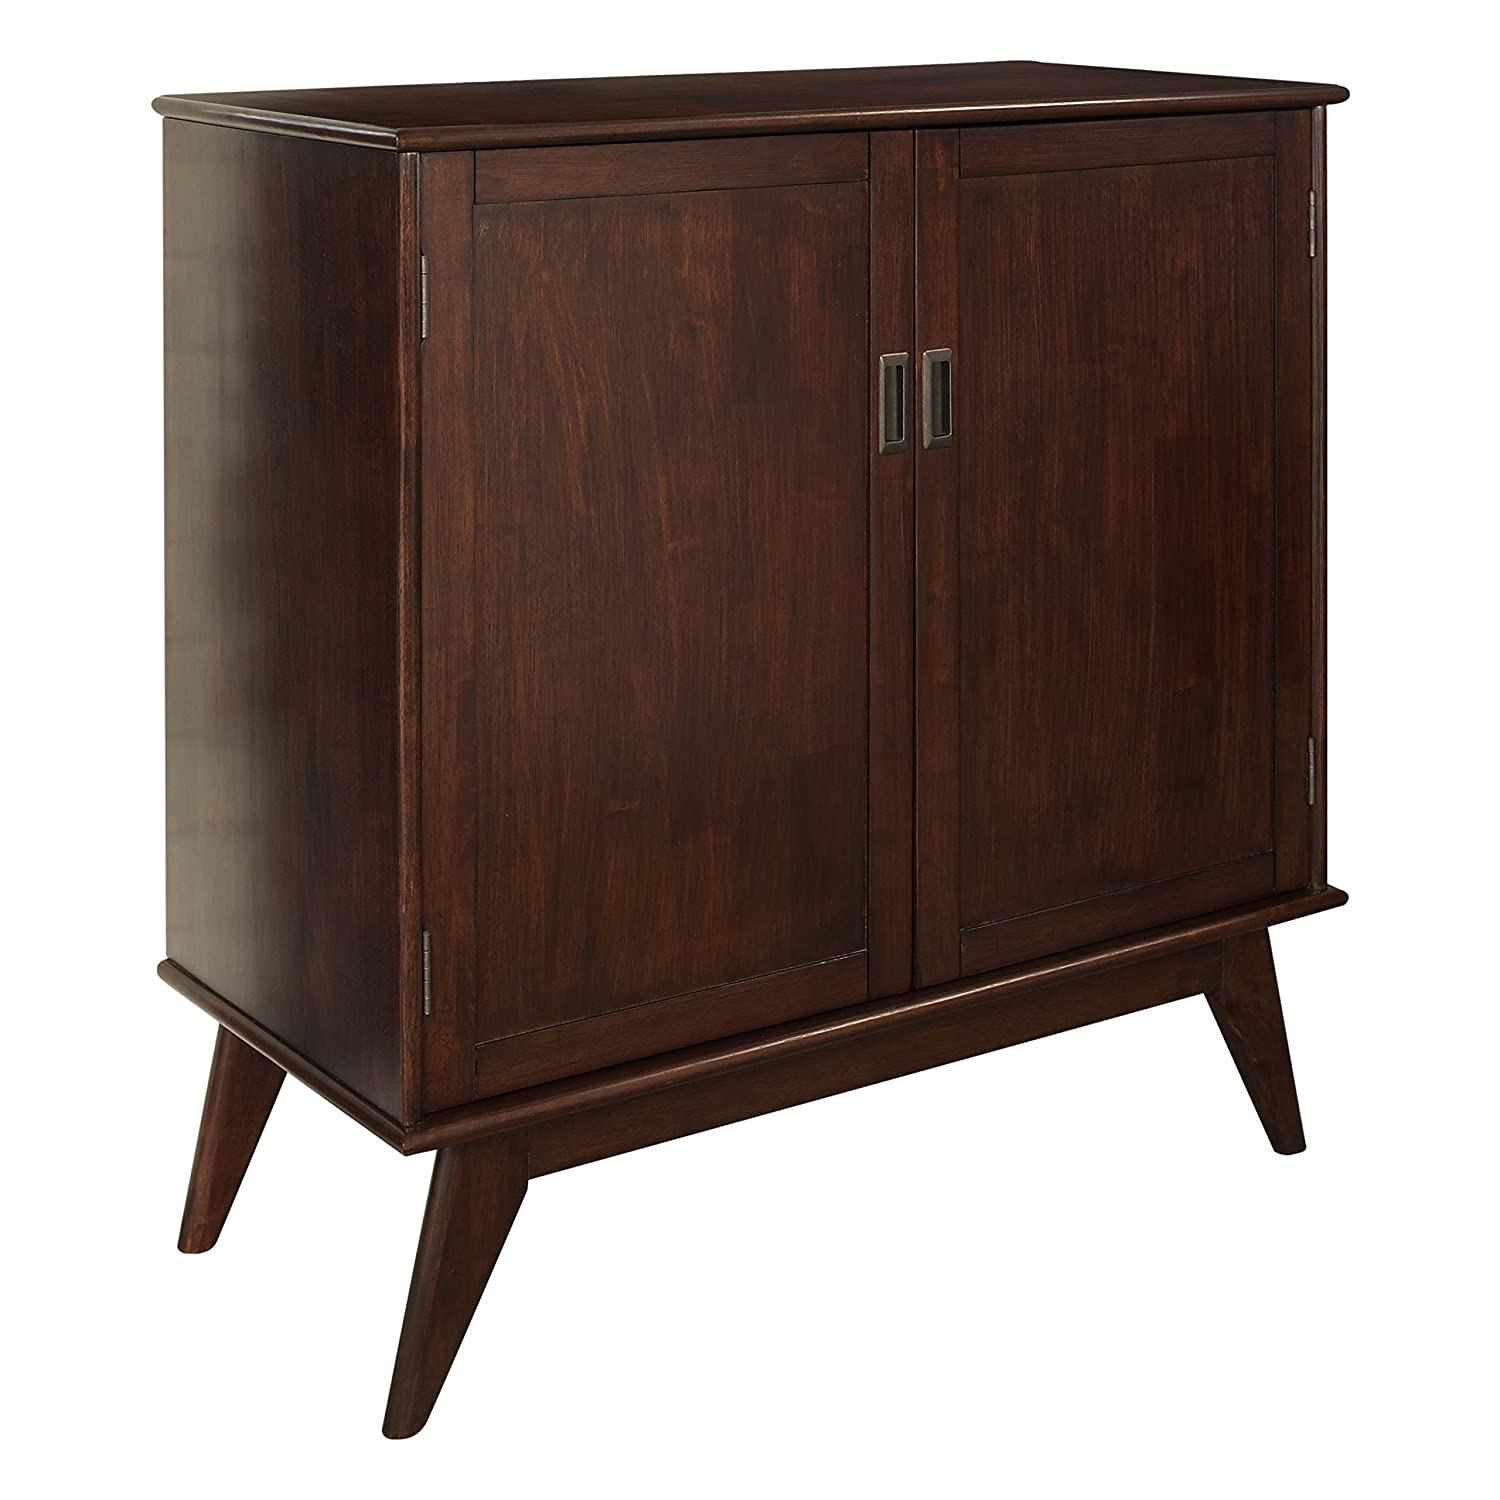 Amazon com simpli home 3axcdrp 06 draper solid hardwood mid century medium storage cabinet in medium auburn brown kitchen dining